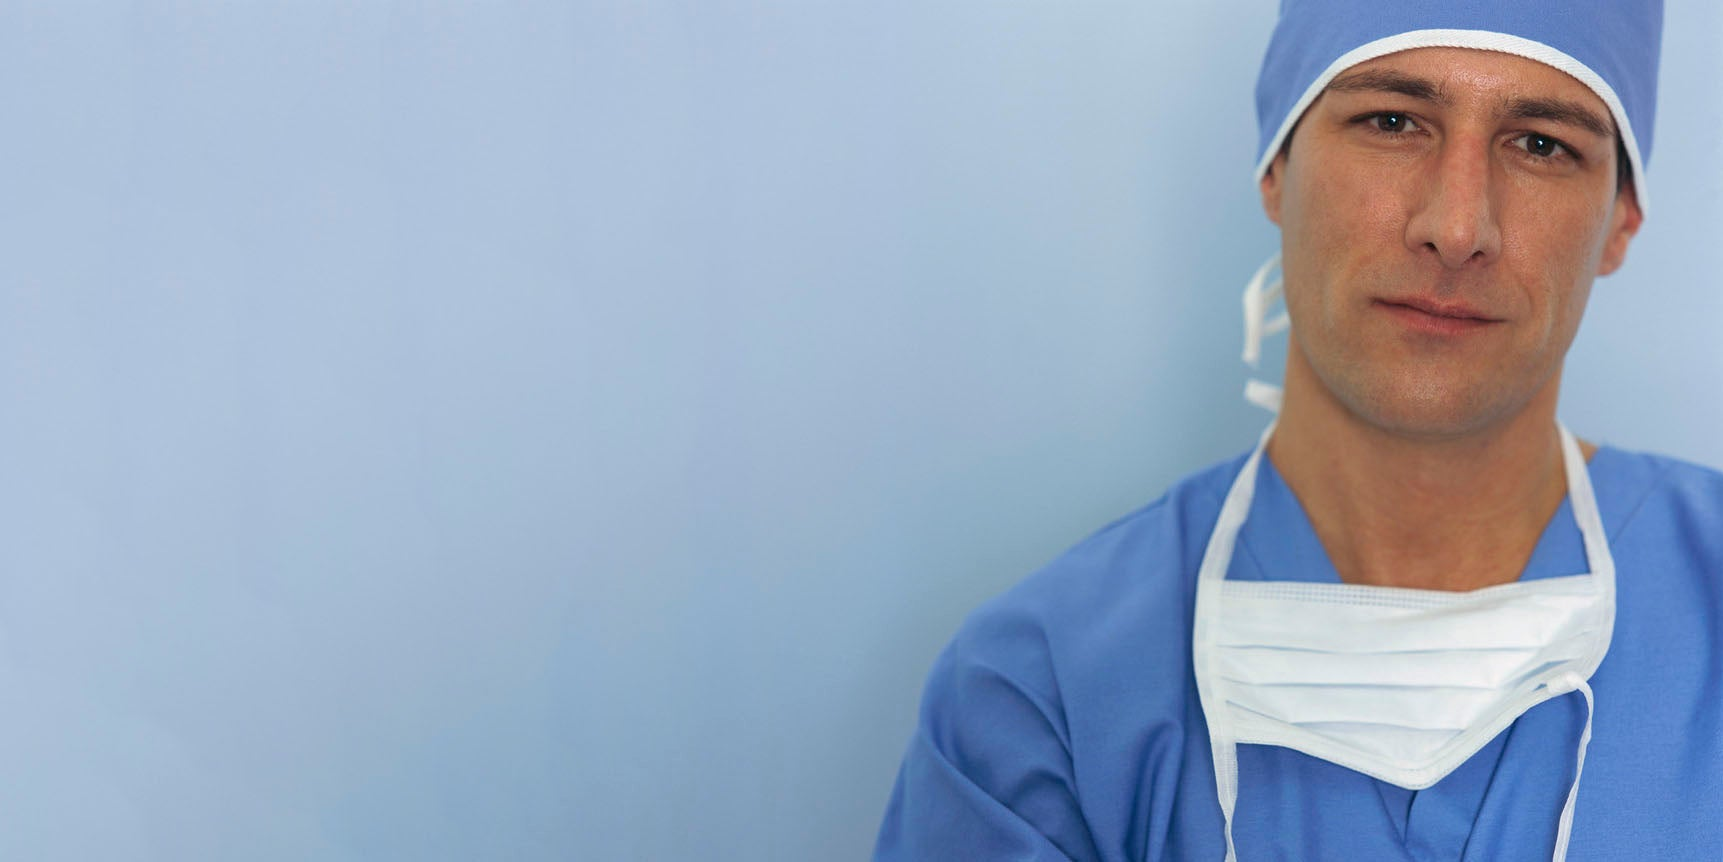 Why Choosing the Right Surgeon Matters Even More Than You Think